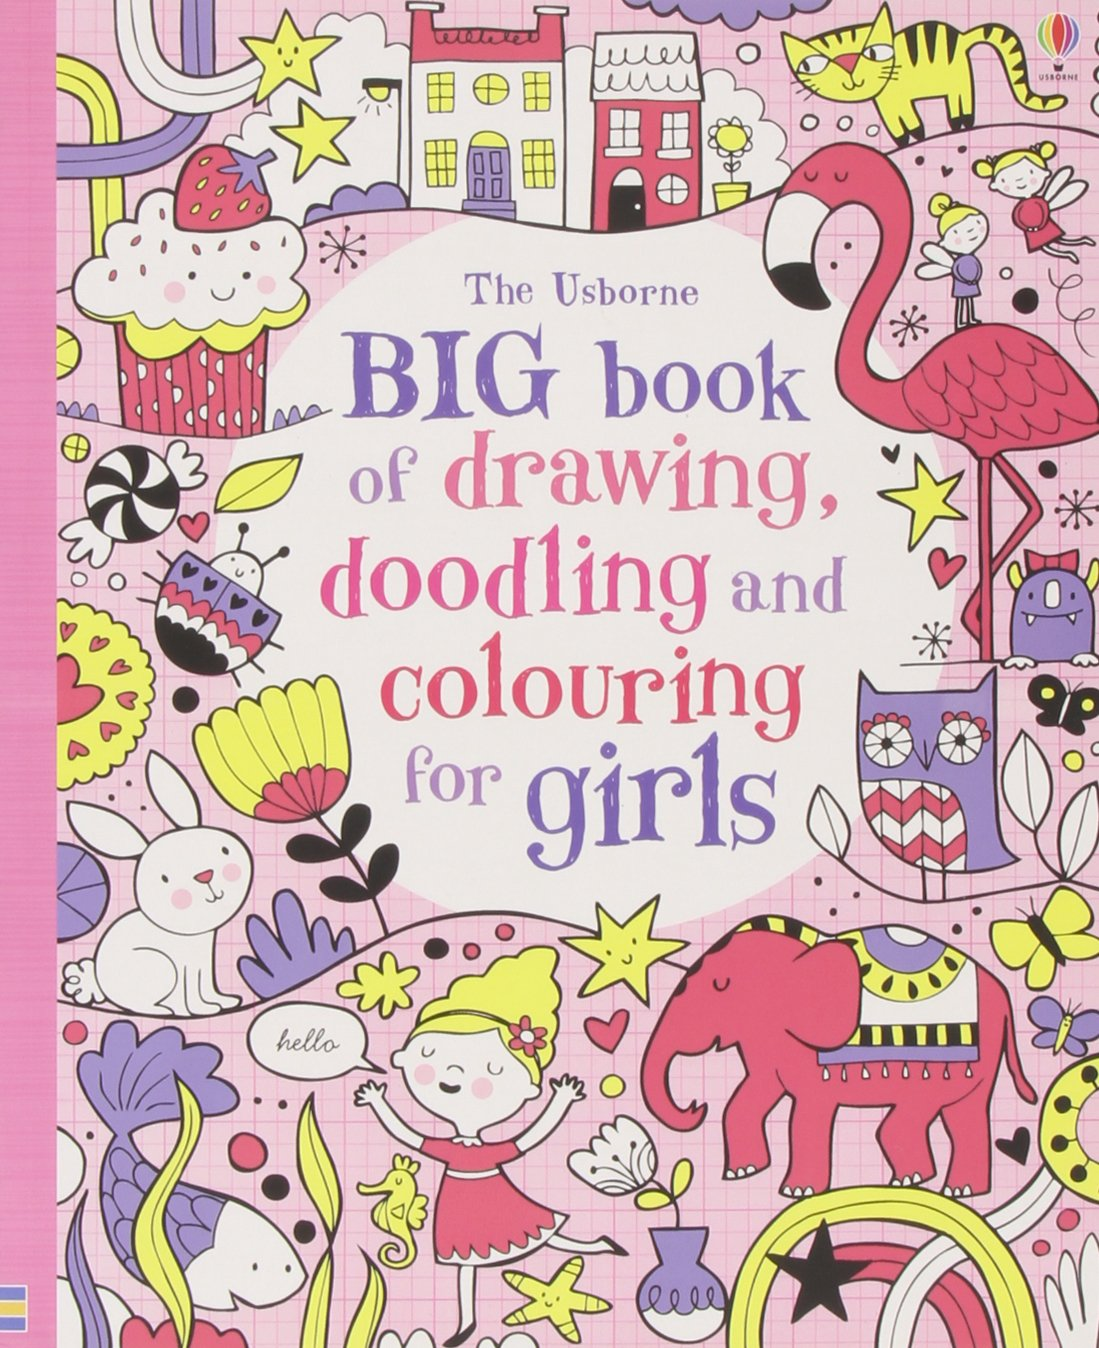 Cute Coloring Book Wallpaper Tiny Coloring Book App Solid Bulk Coloring Books Animal Coloring Book Old Animal Coloring Books FreshBig Coloring Books Big Book Of Drawing, Doodling \u0026 Colouring For Girls (Usborne ..